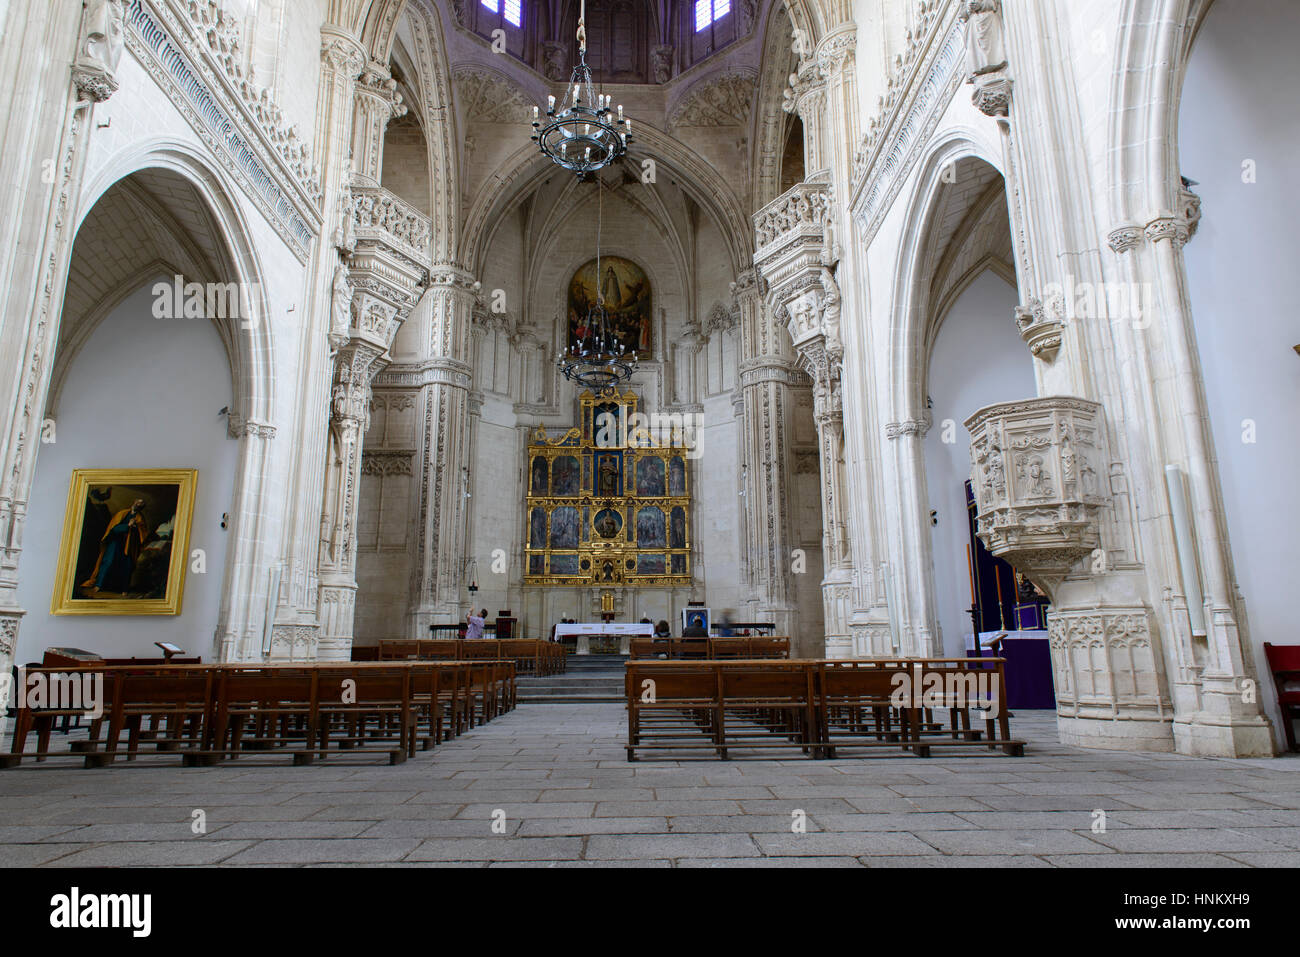 Toledo , Spain.The Monastery of San Juan de los Reyes. The main chapel. - Stock Image